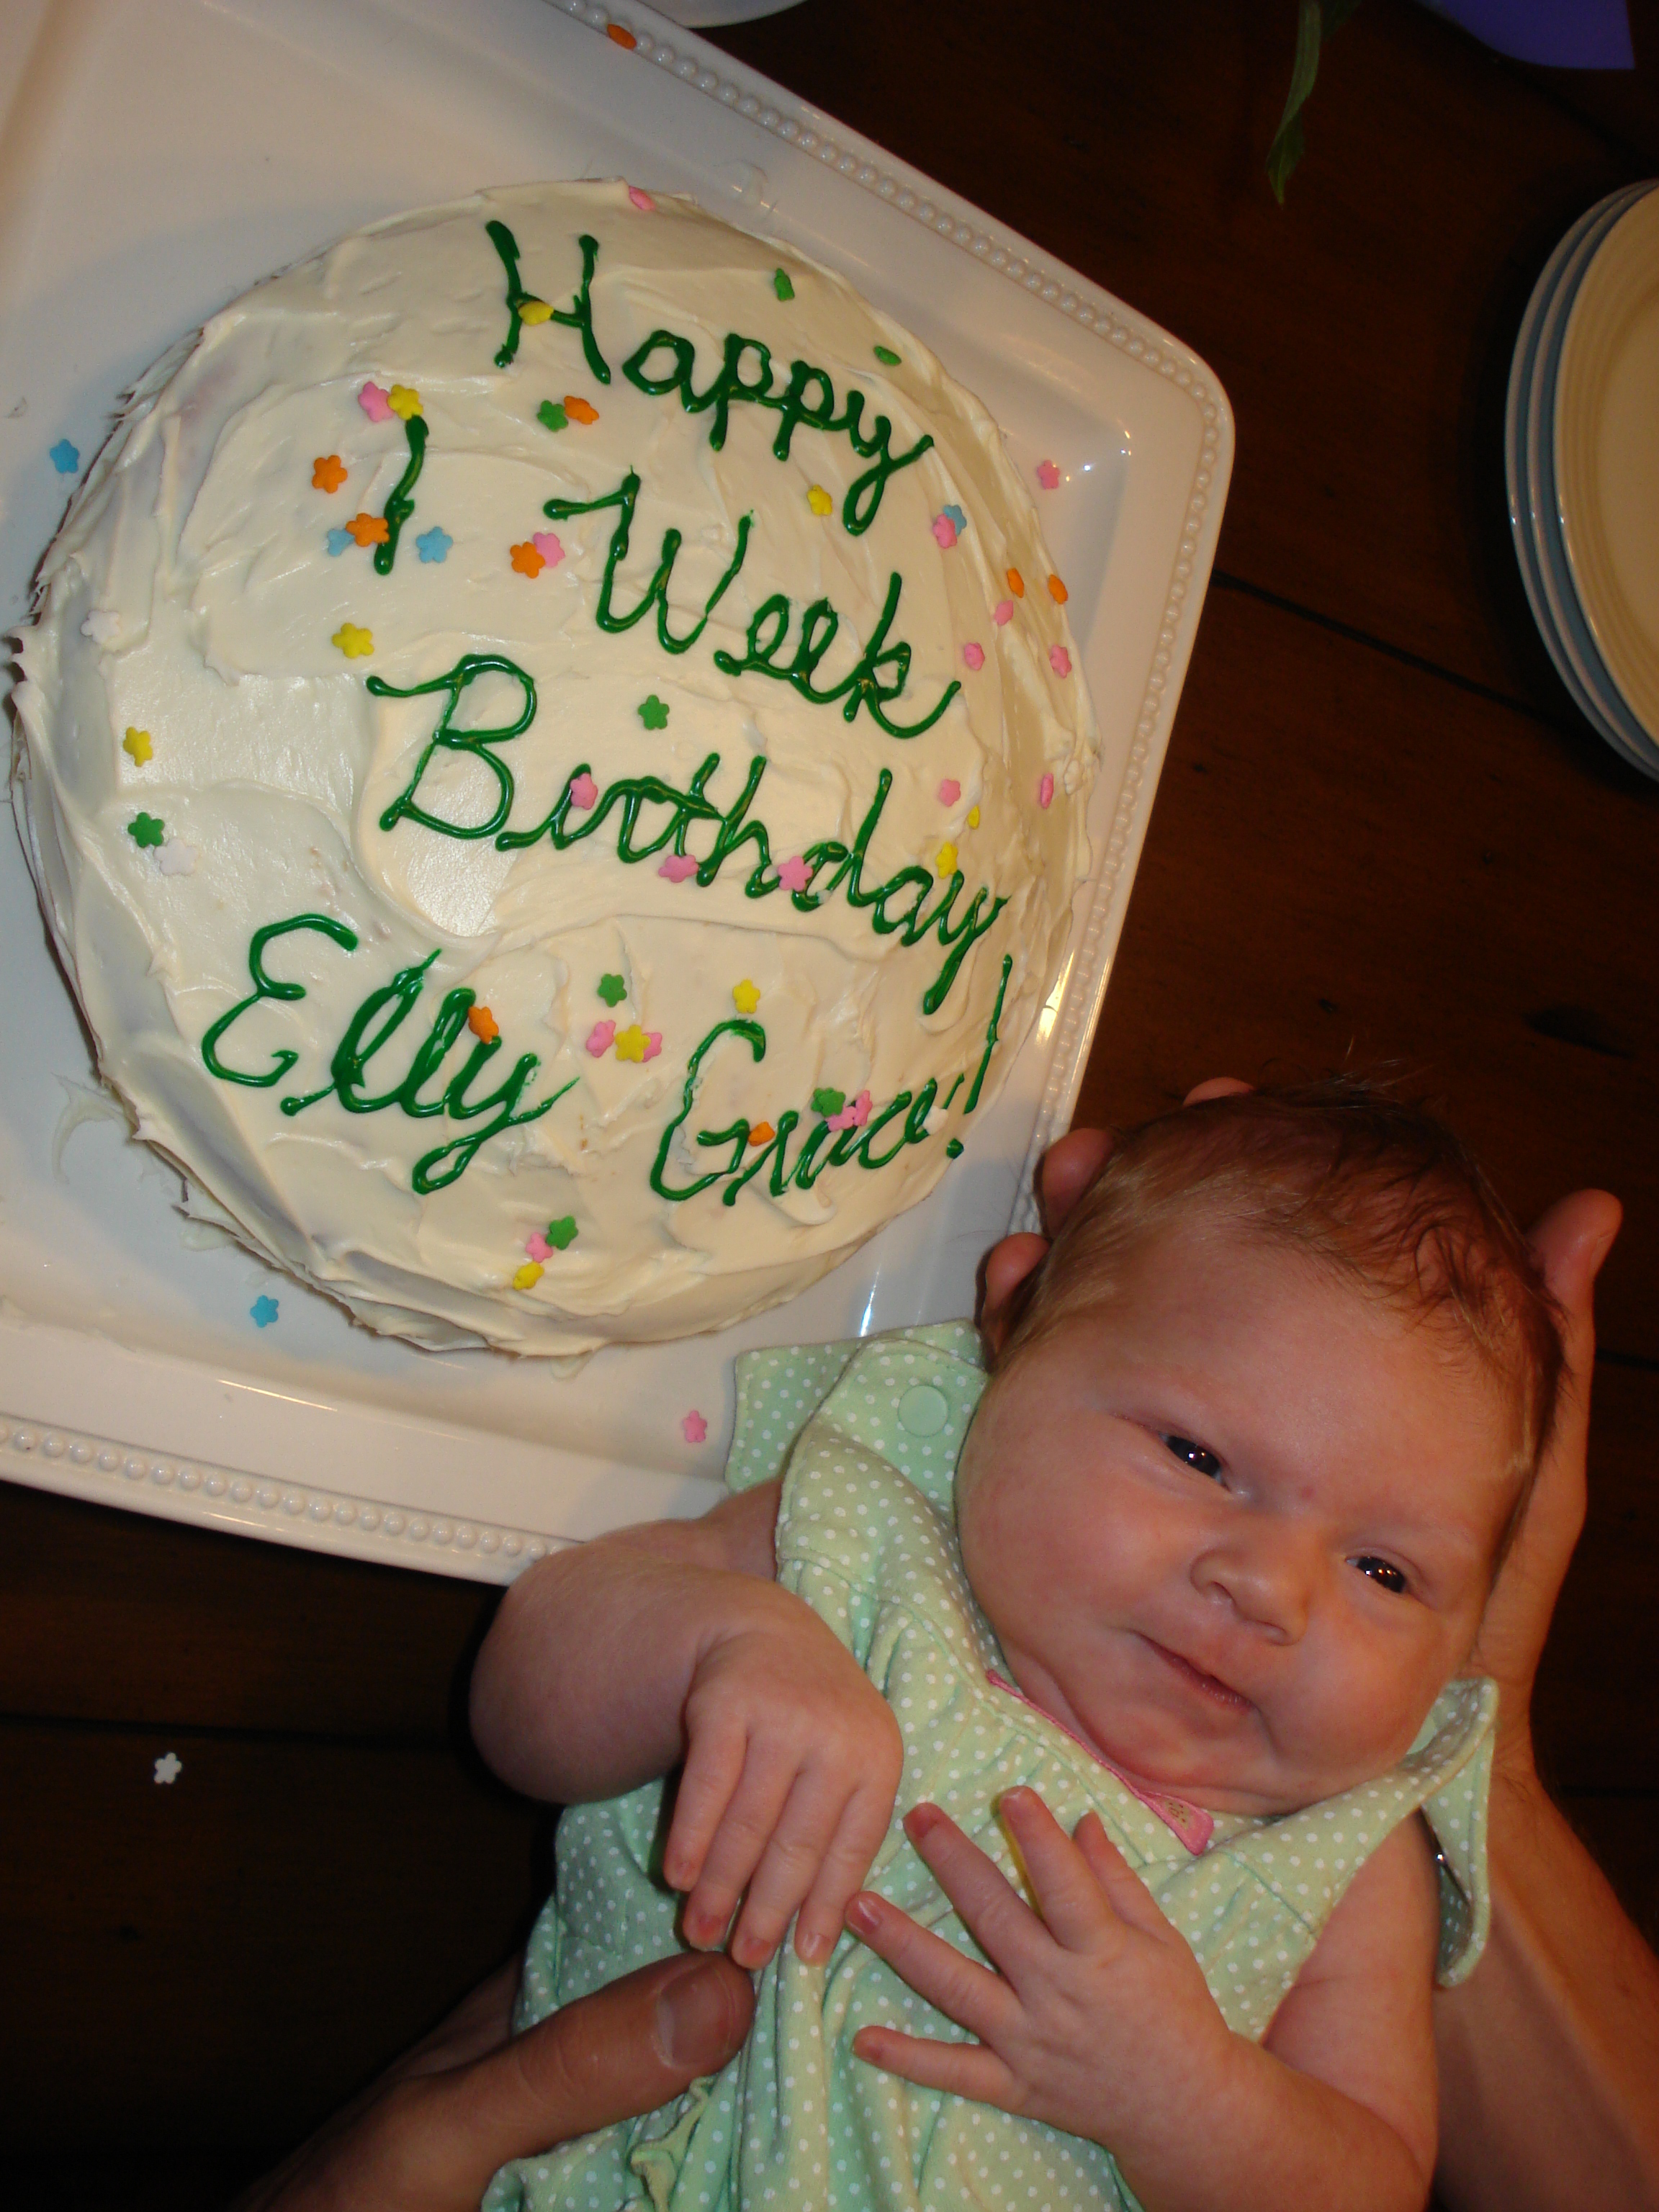 Elly S Studio Cake Design Chilliwack : Happy 1 Week Birthday, Elly G! The Real World: Wilmington